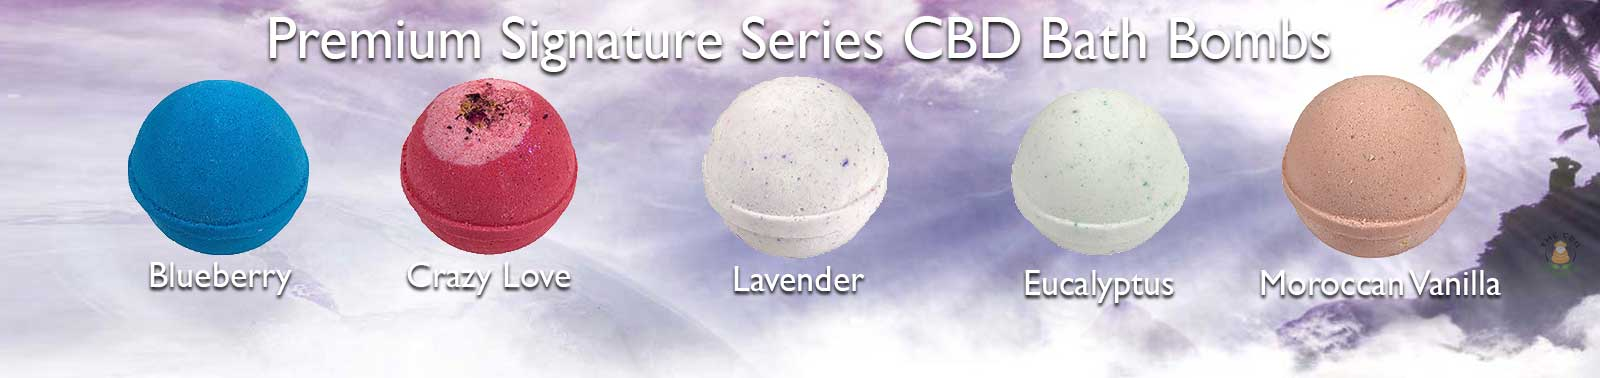 cbd bathbombs